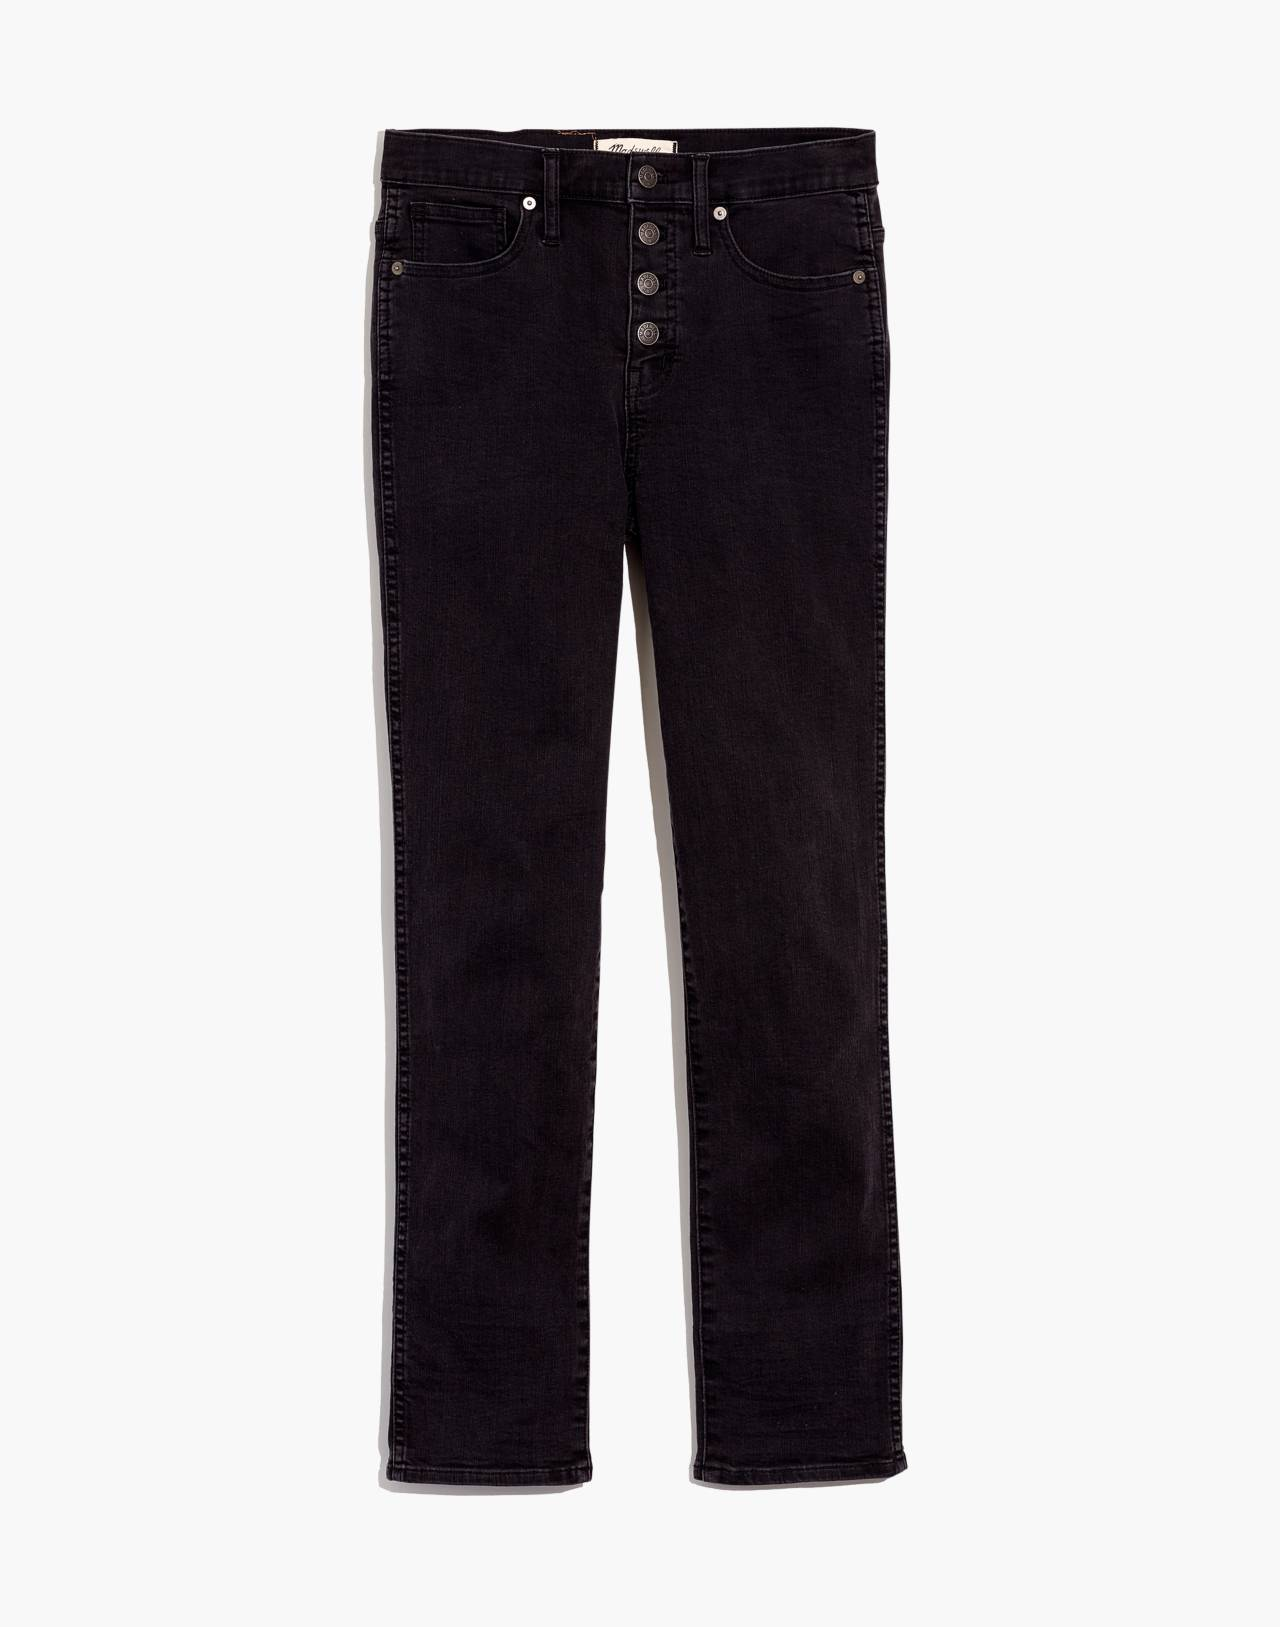 Petite Slim Straight Jeans in Lunar Wash: Button-Front Edition in lunar wash image 4